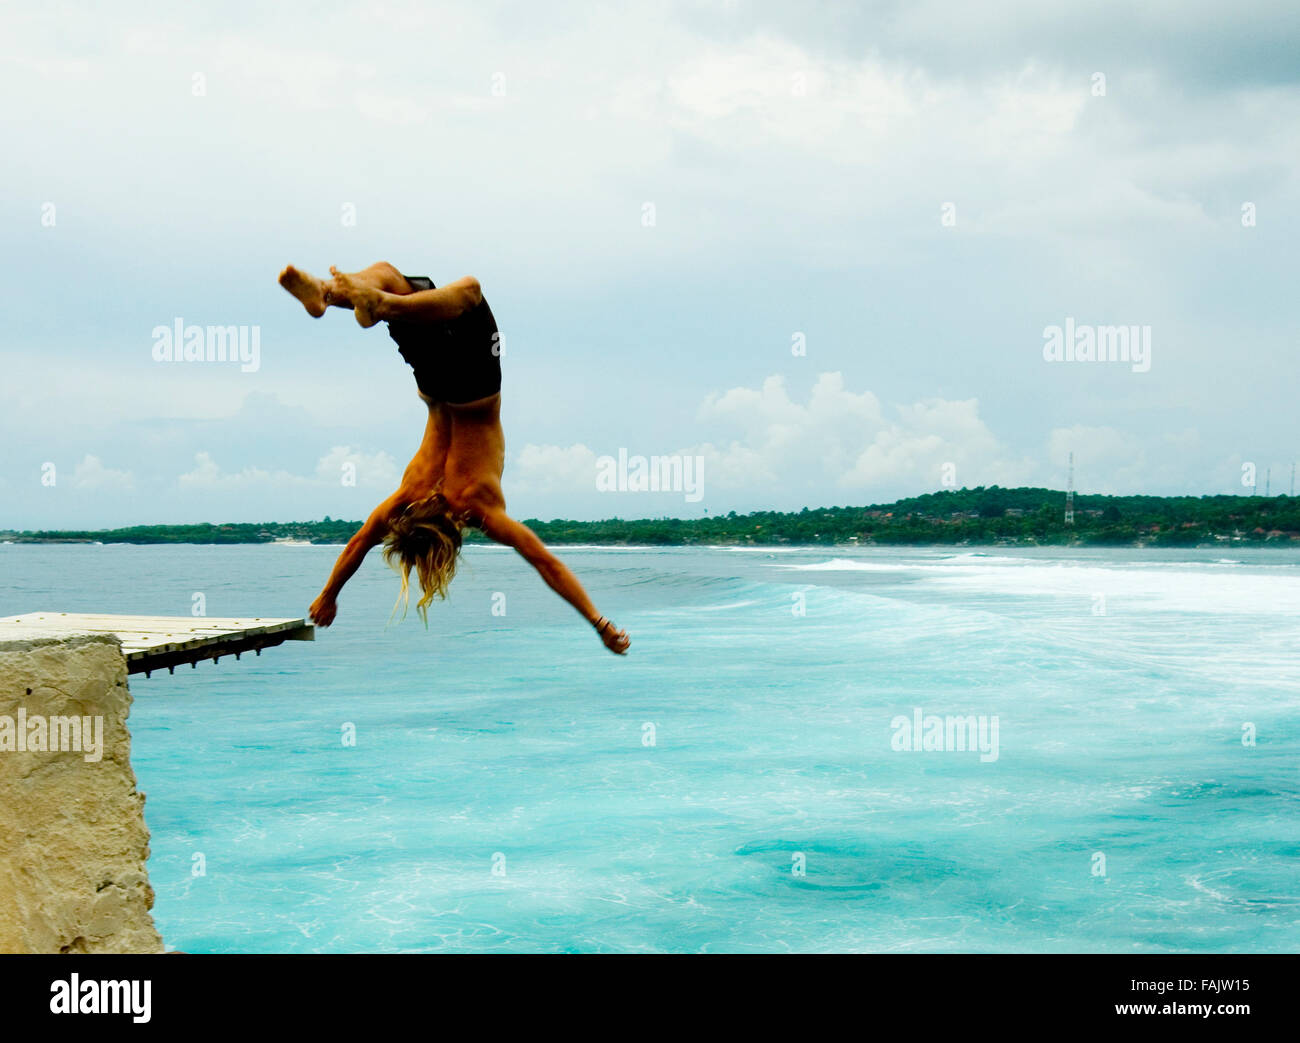 Young man somersaulting in to the sea, Indonesia. Stock Photo